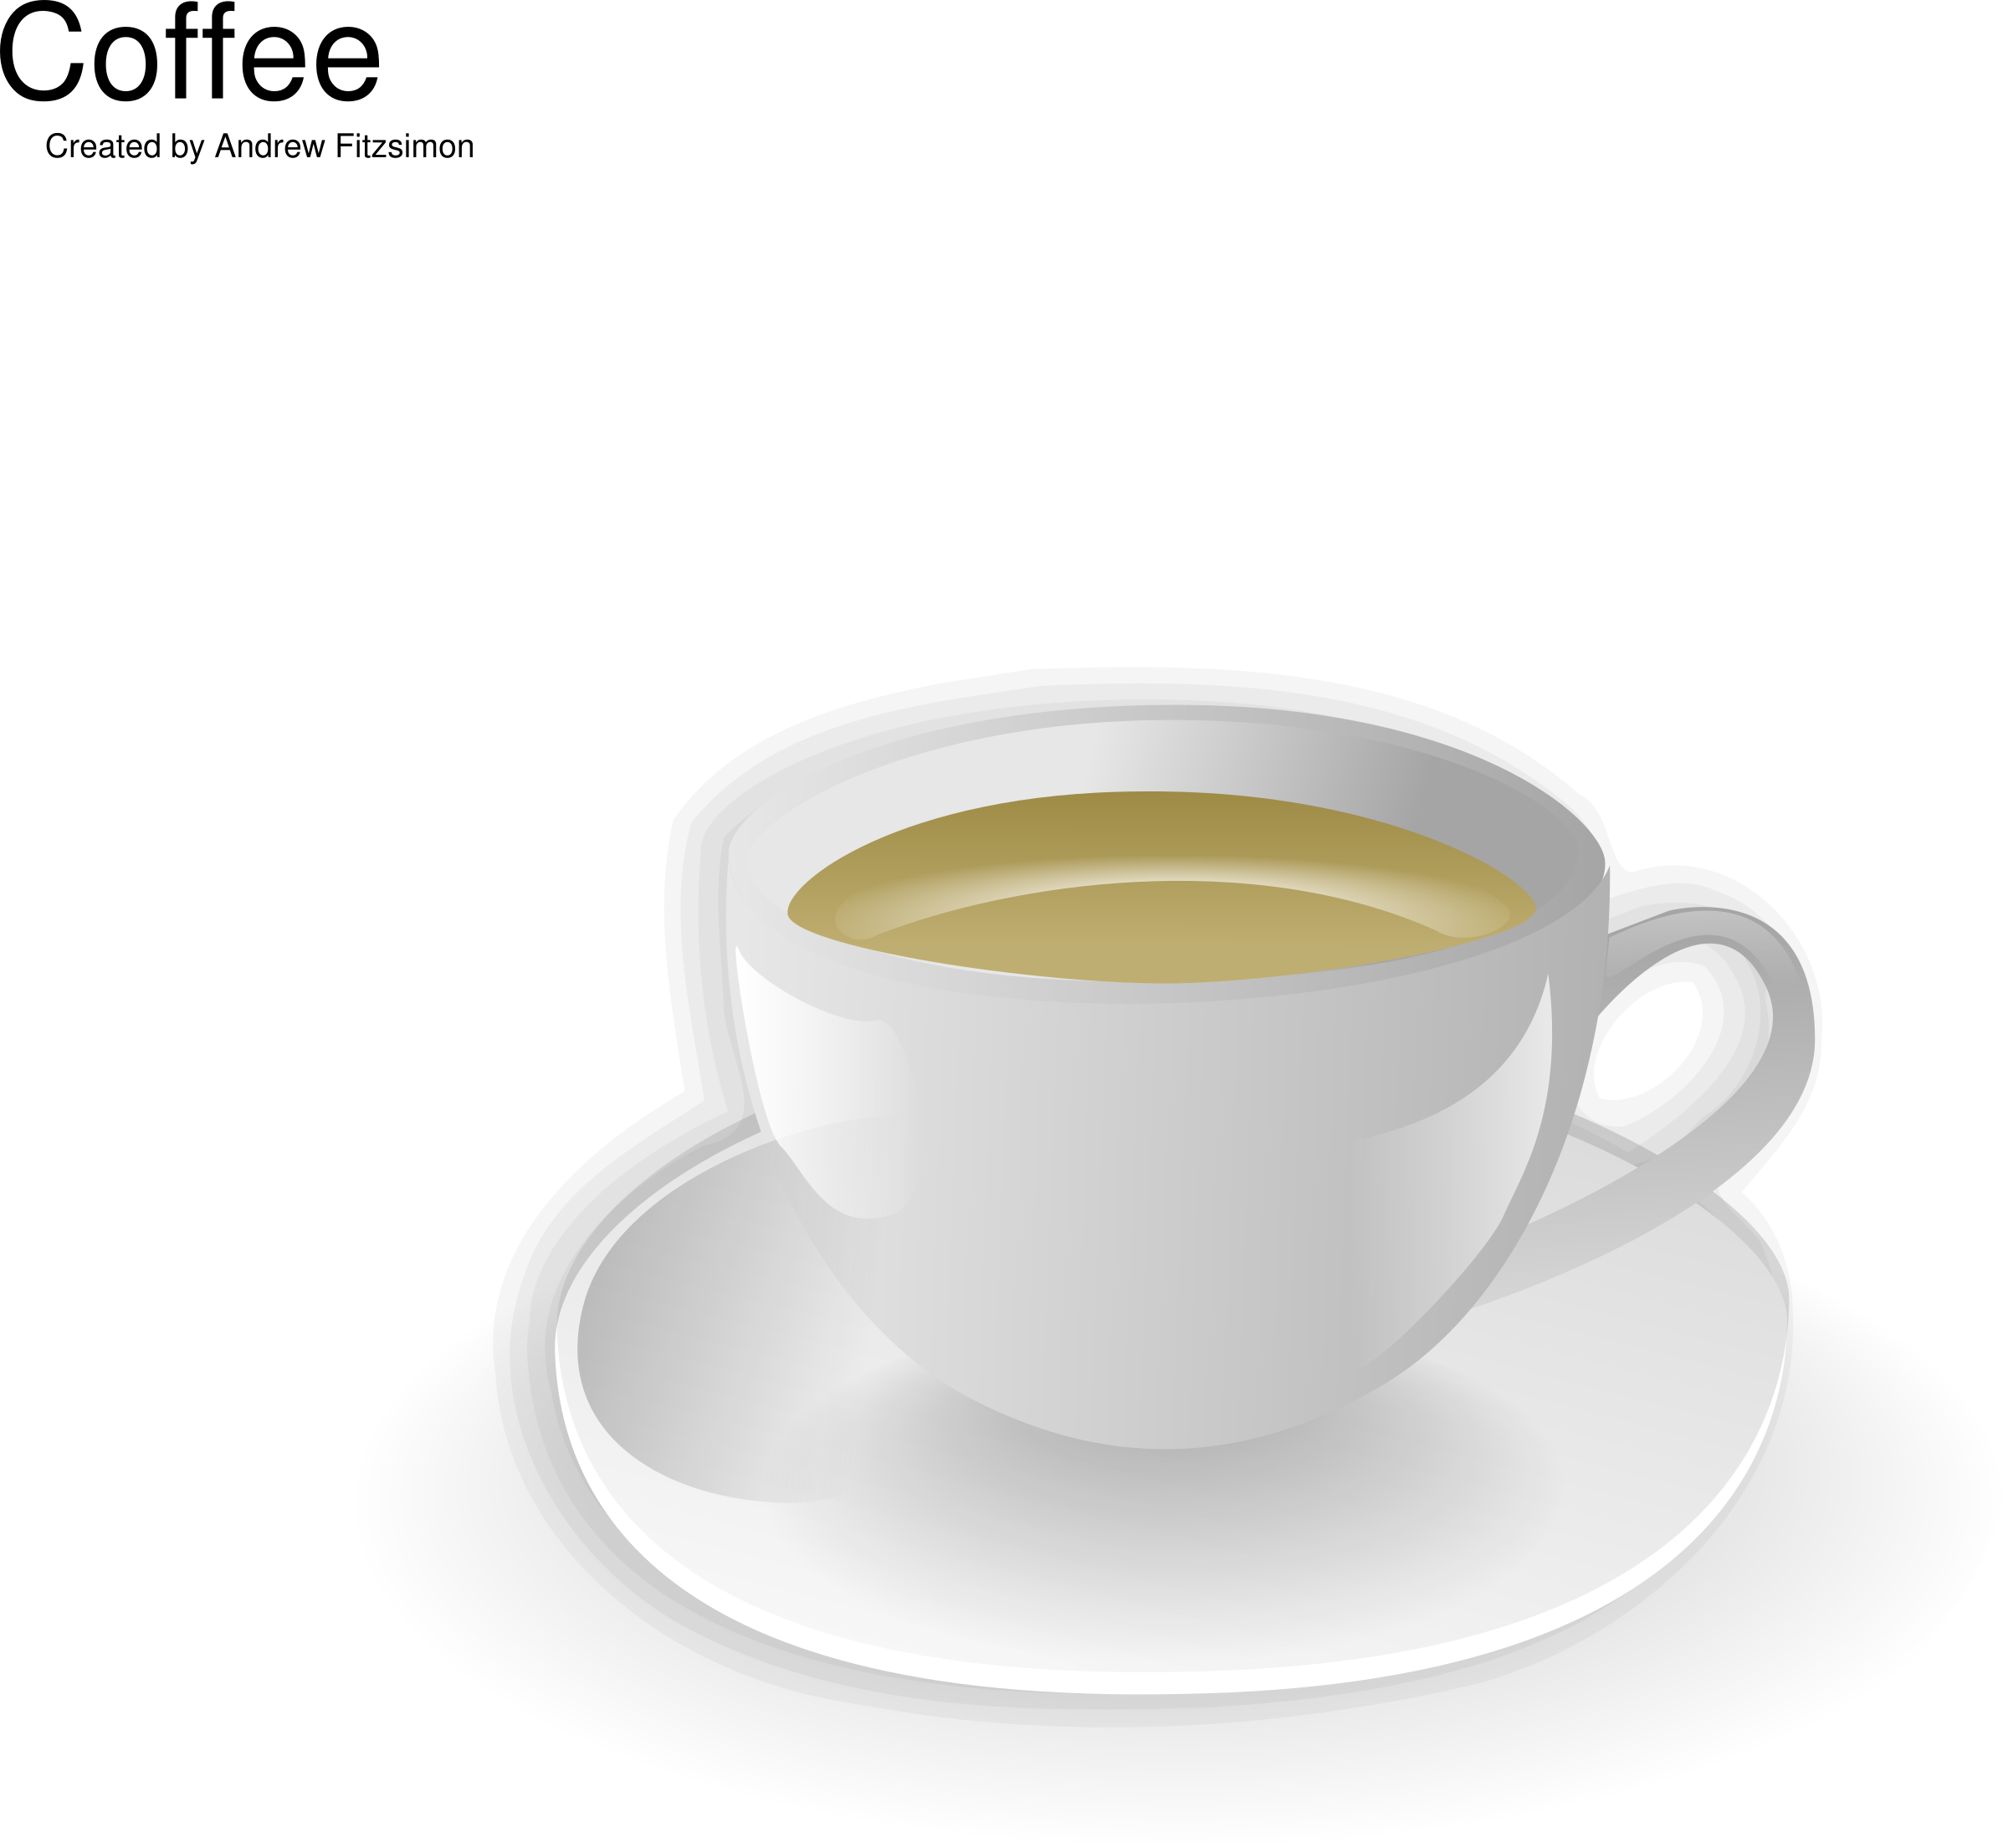 vector freeuse library Cup. Starbucks coffee clipart